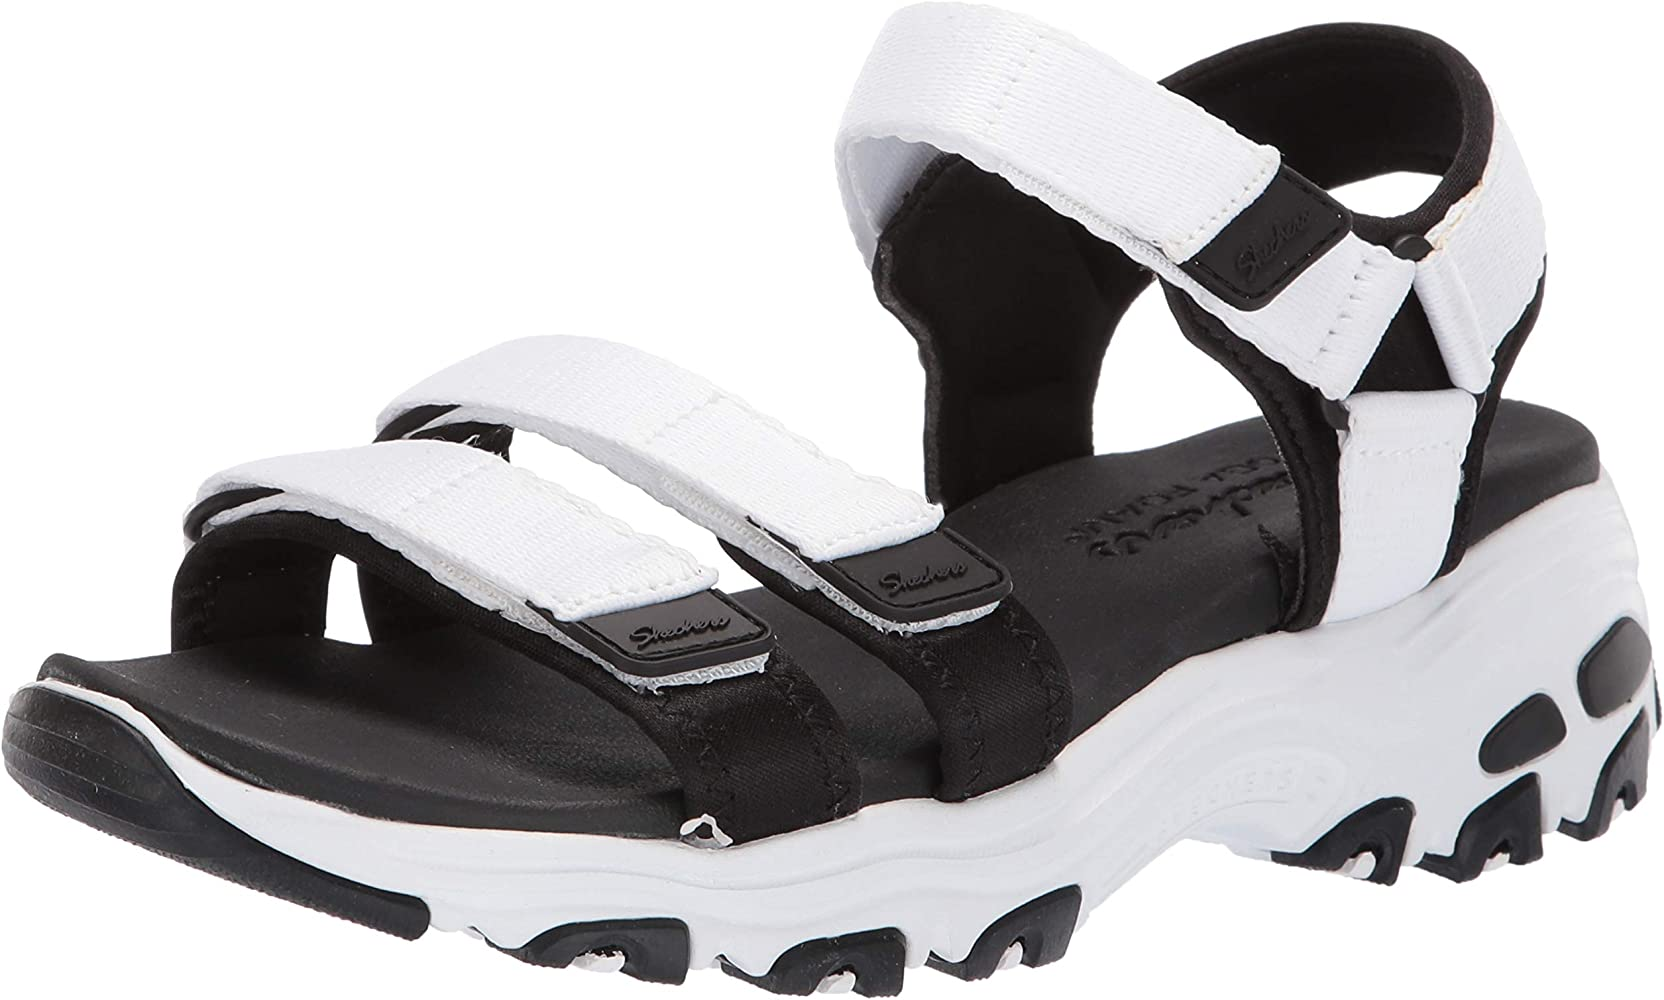 Skechers DLites Fresh Catch 31514WBK, Sandalias